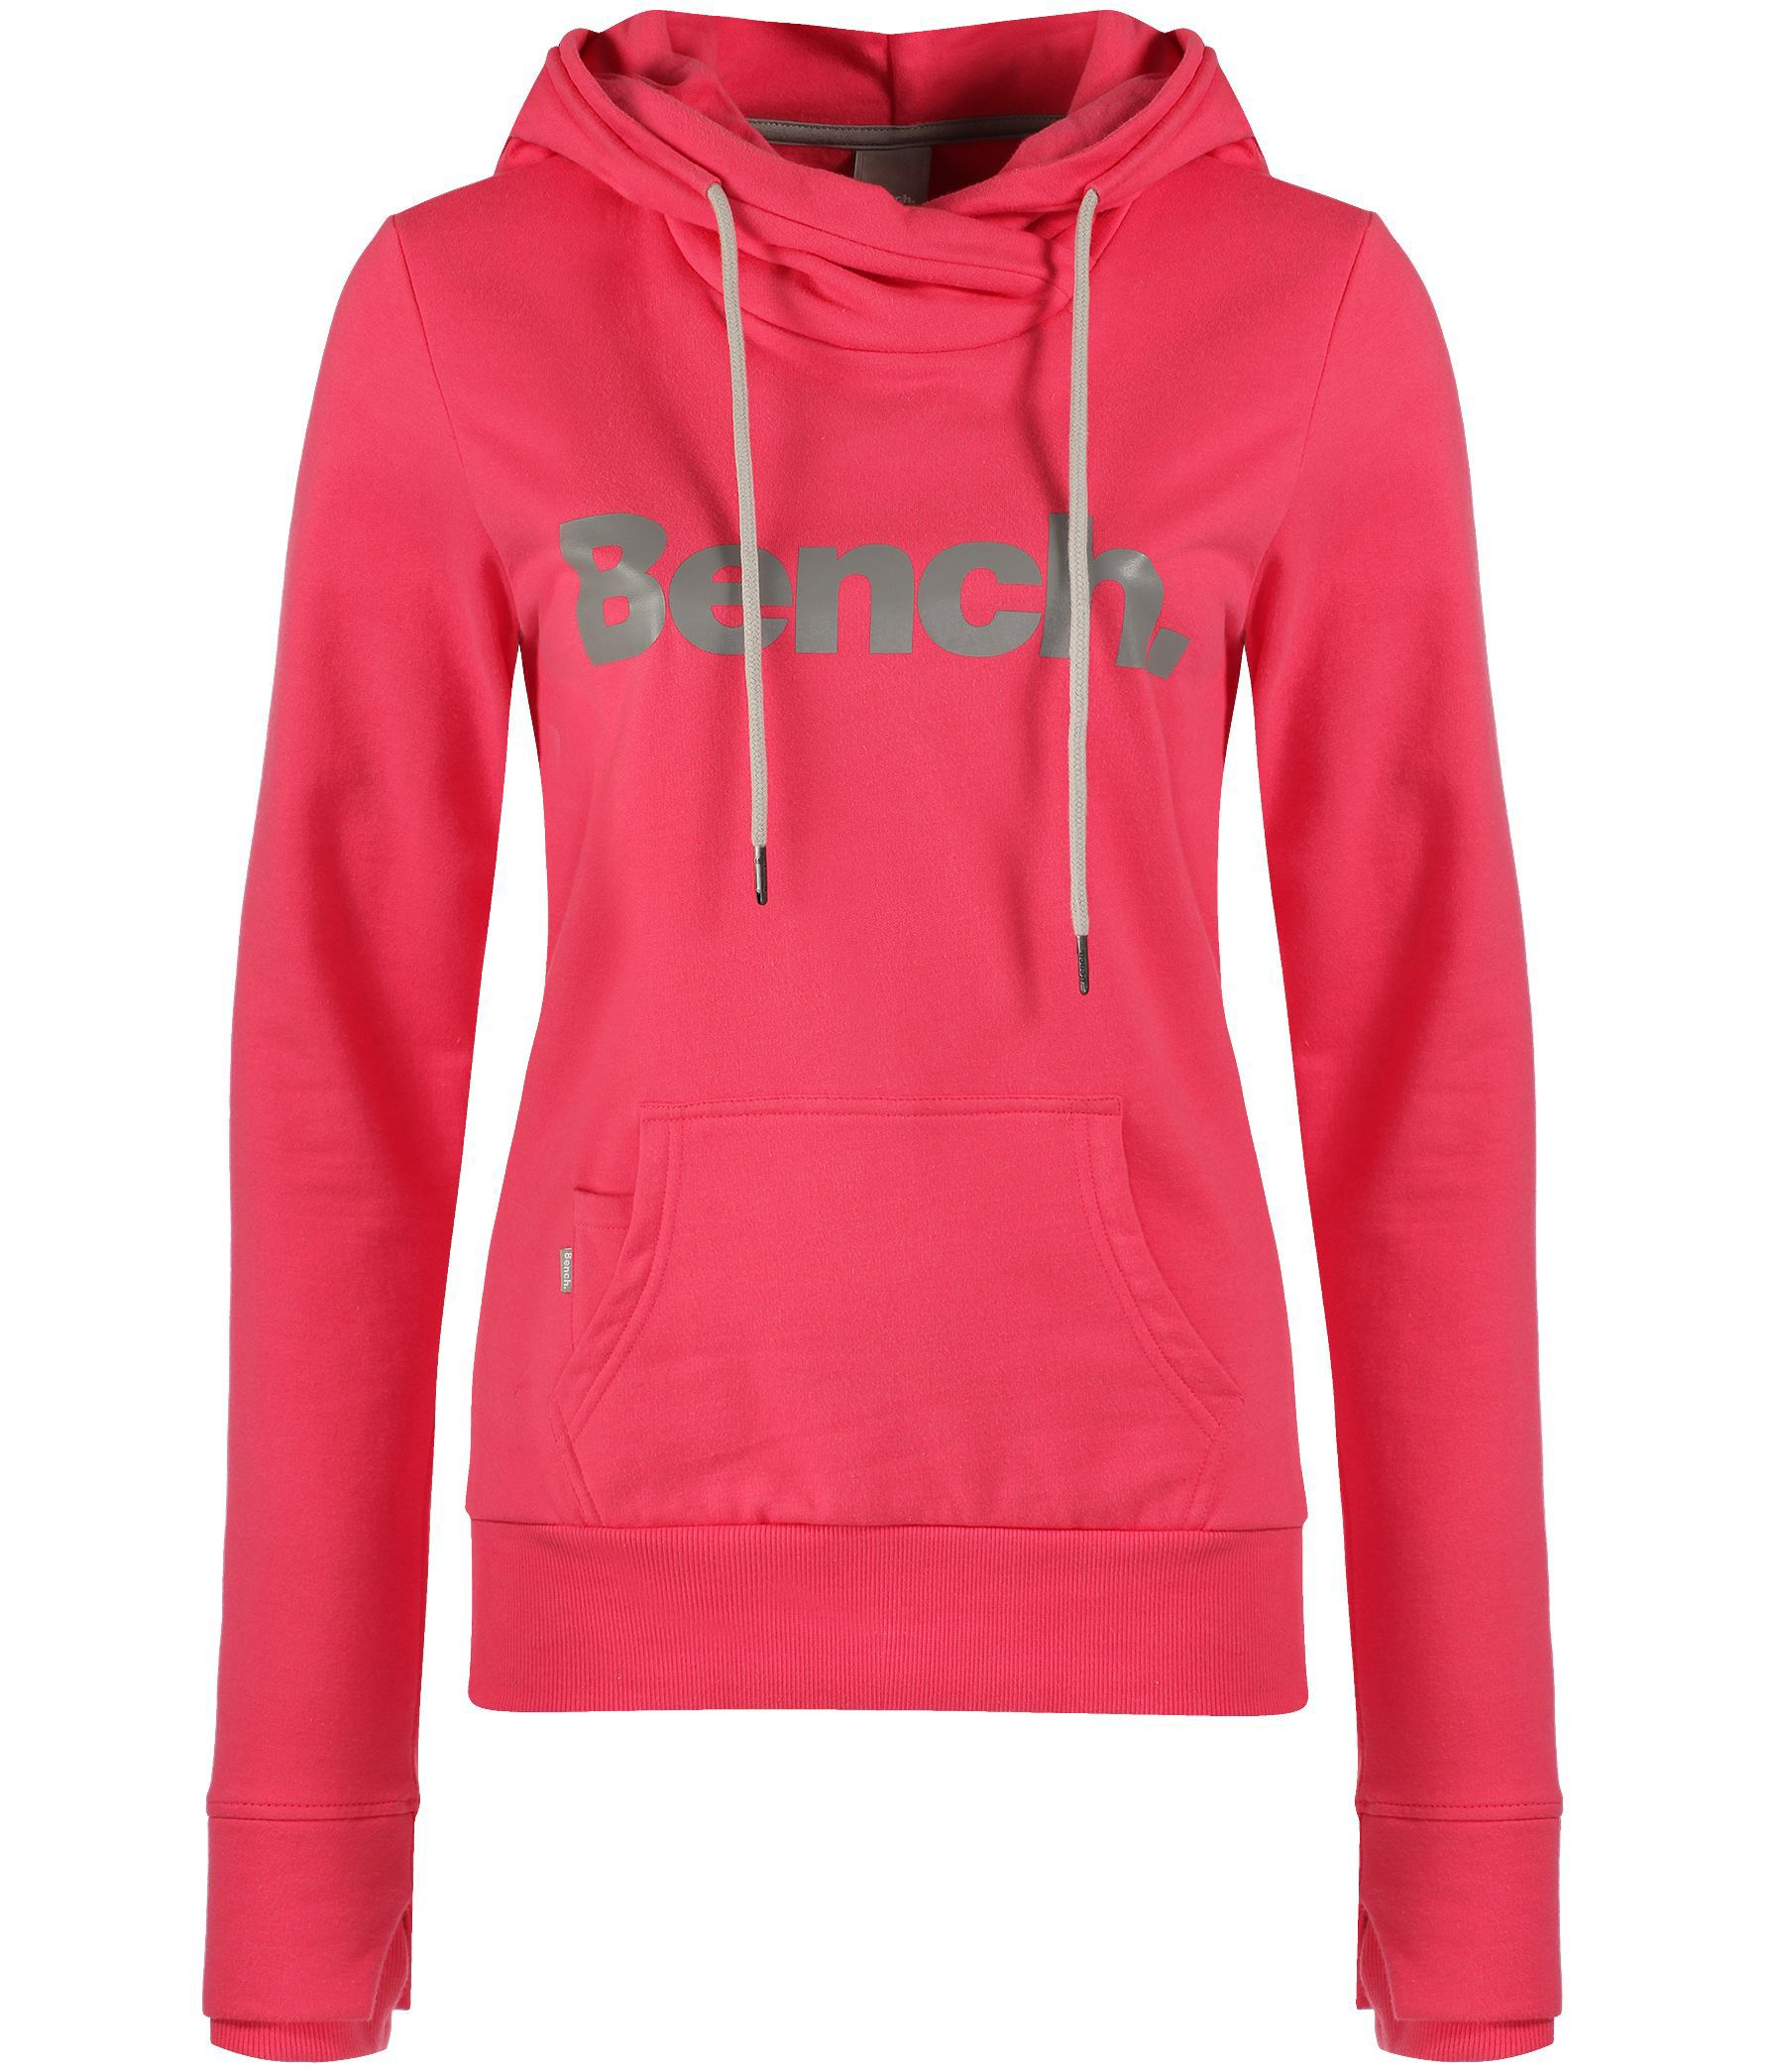 Bench Yoport Corp Logo Sweatshirt Hoodie In Pink Lyst